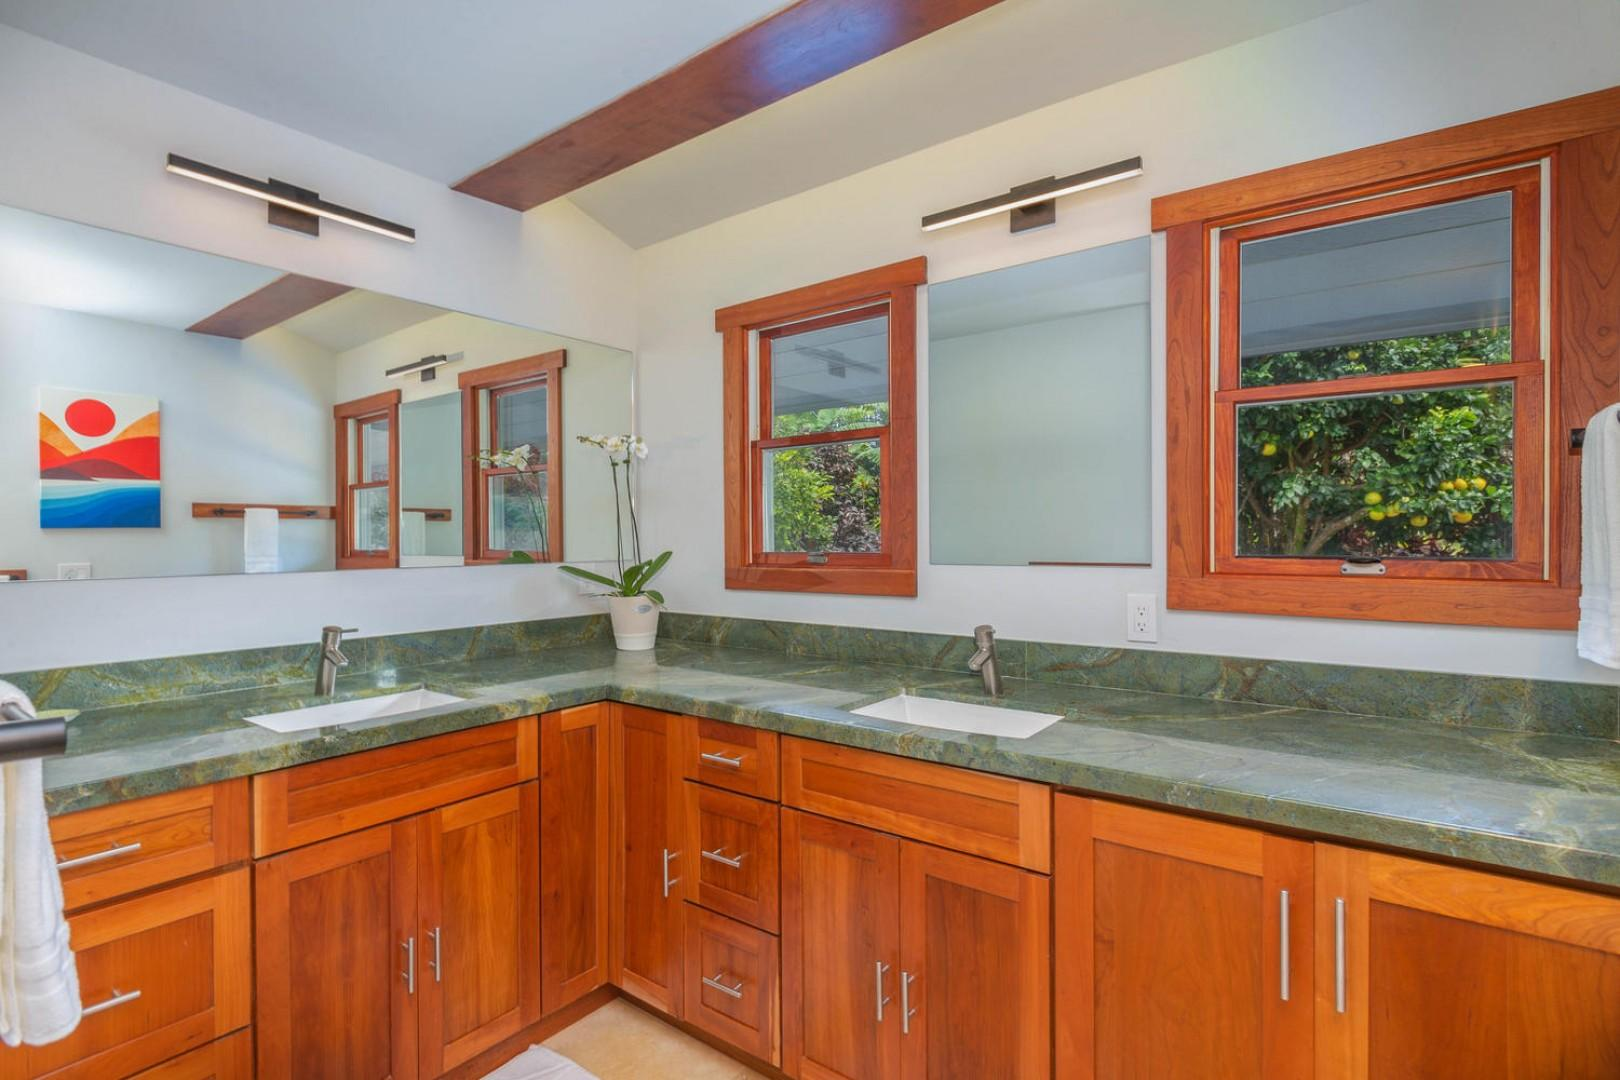 Dual sinks and plenty of counter space